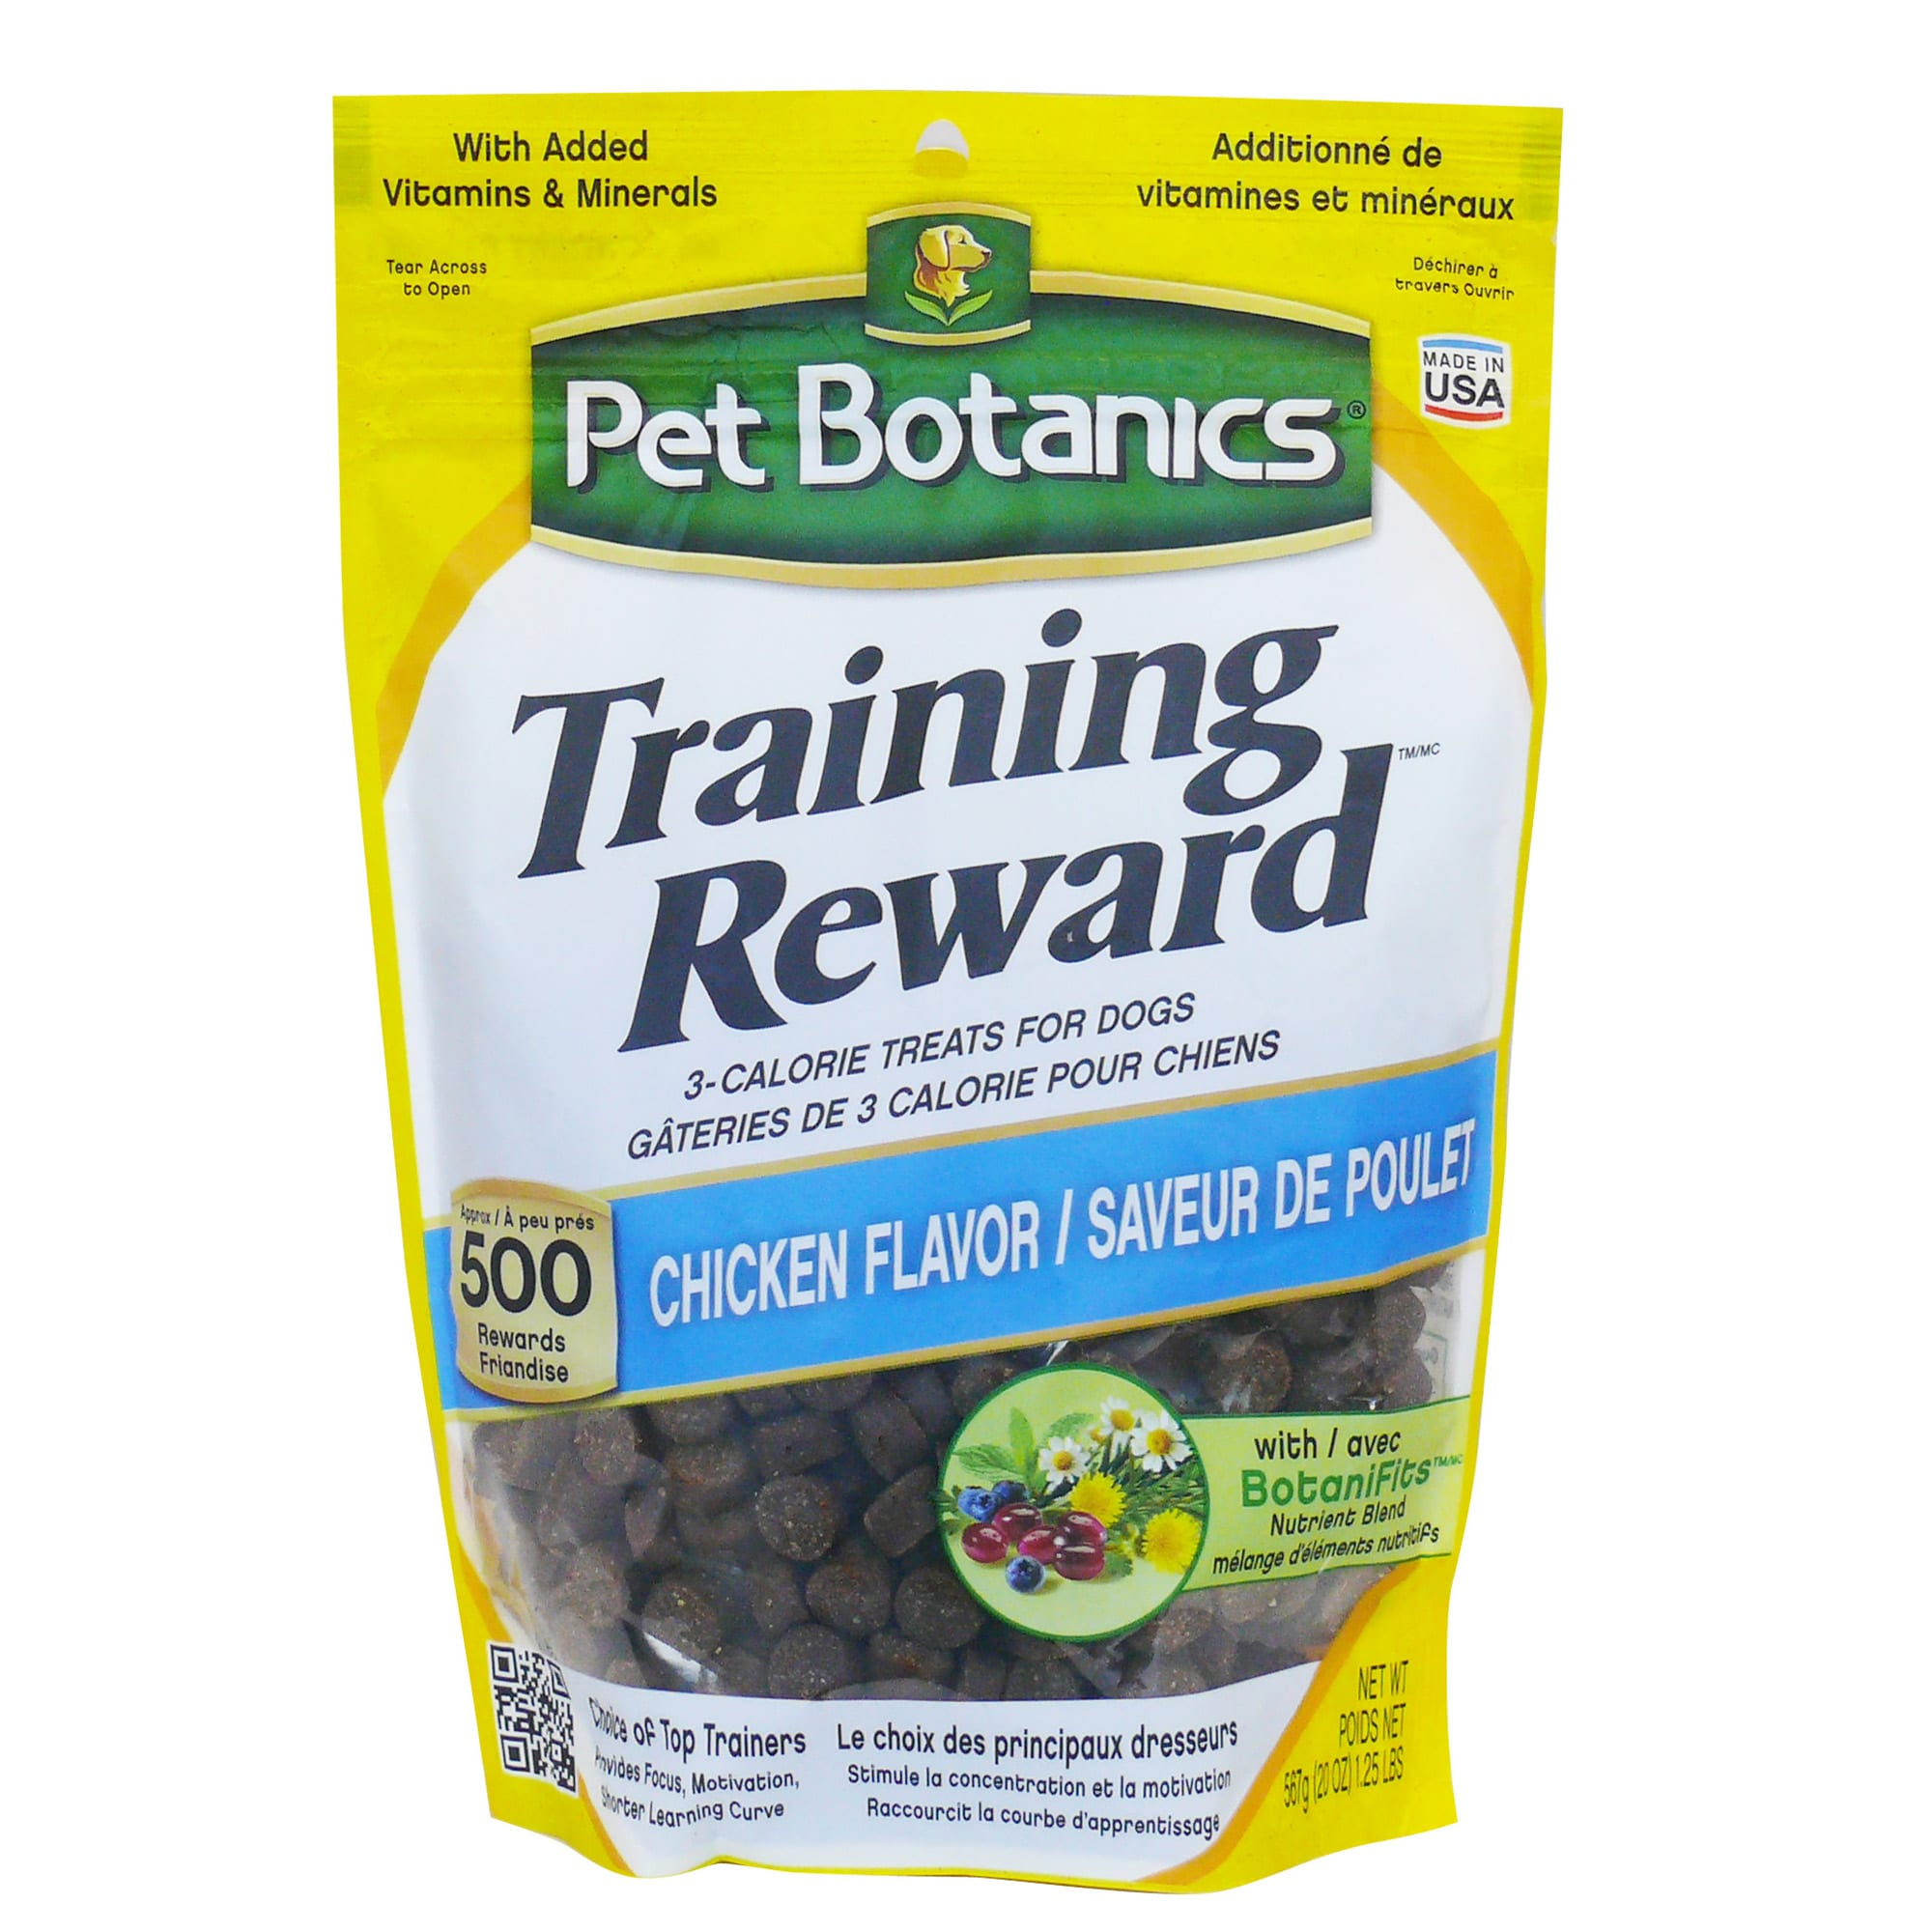 Pet Botanics Training Reward Chicken Flavor Dog Treats, 20 oz. bag, 500 count